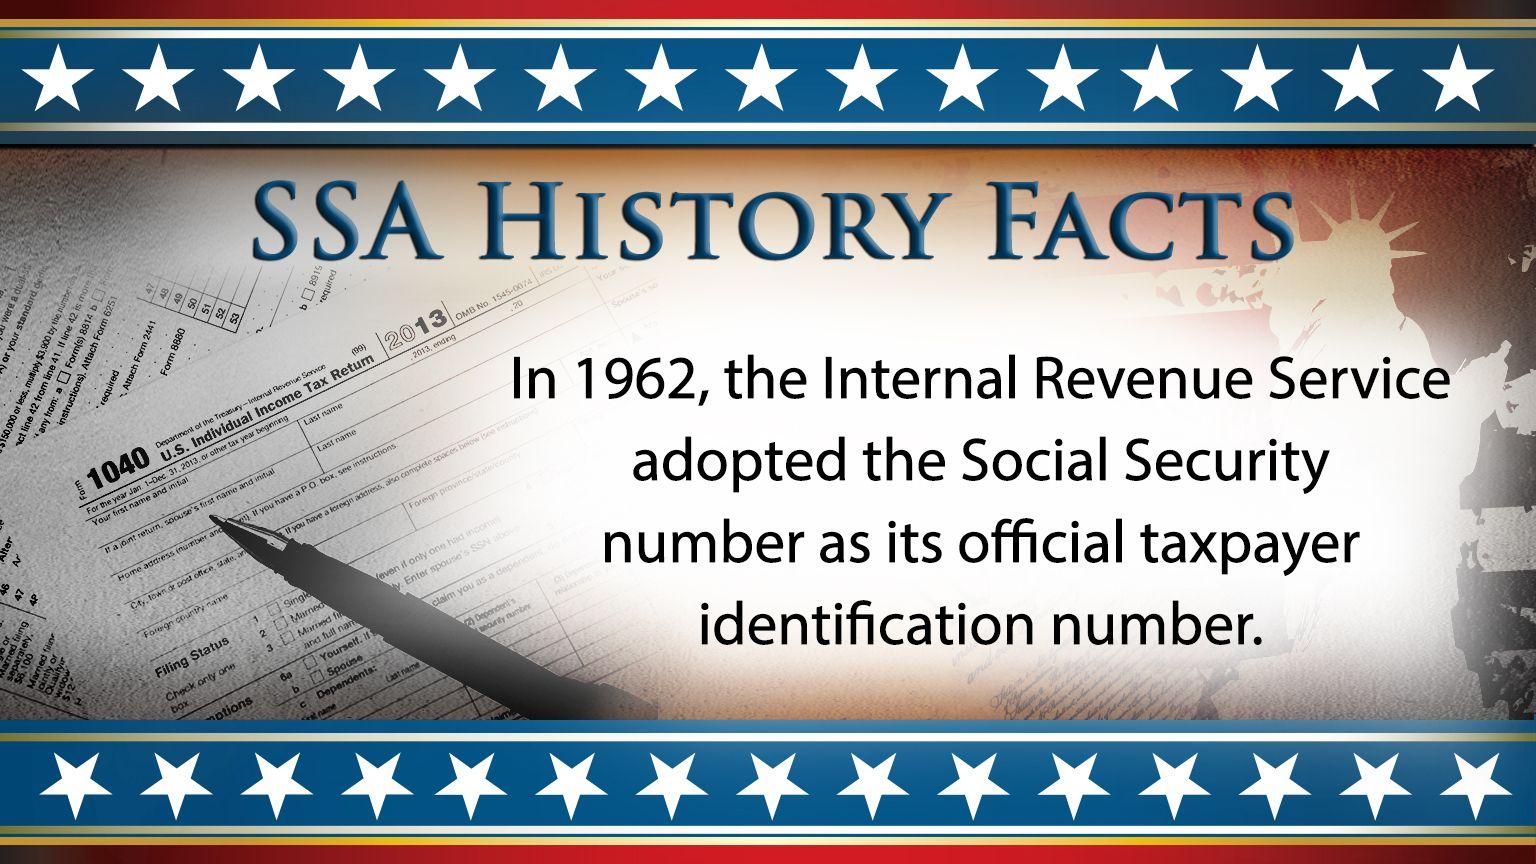 43f629d2d360ed586afe3d68888a8c2c - Social Security Retirement Application Instructions